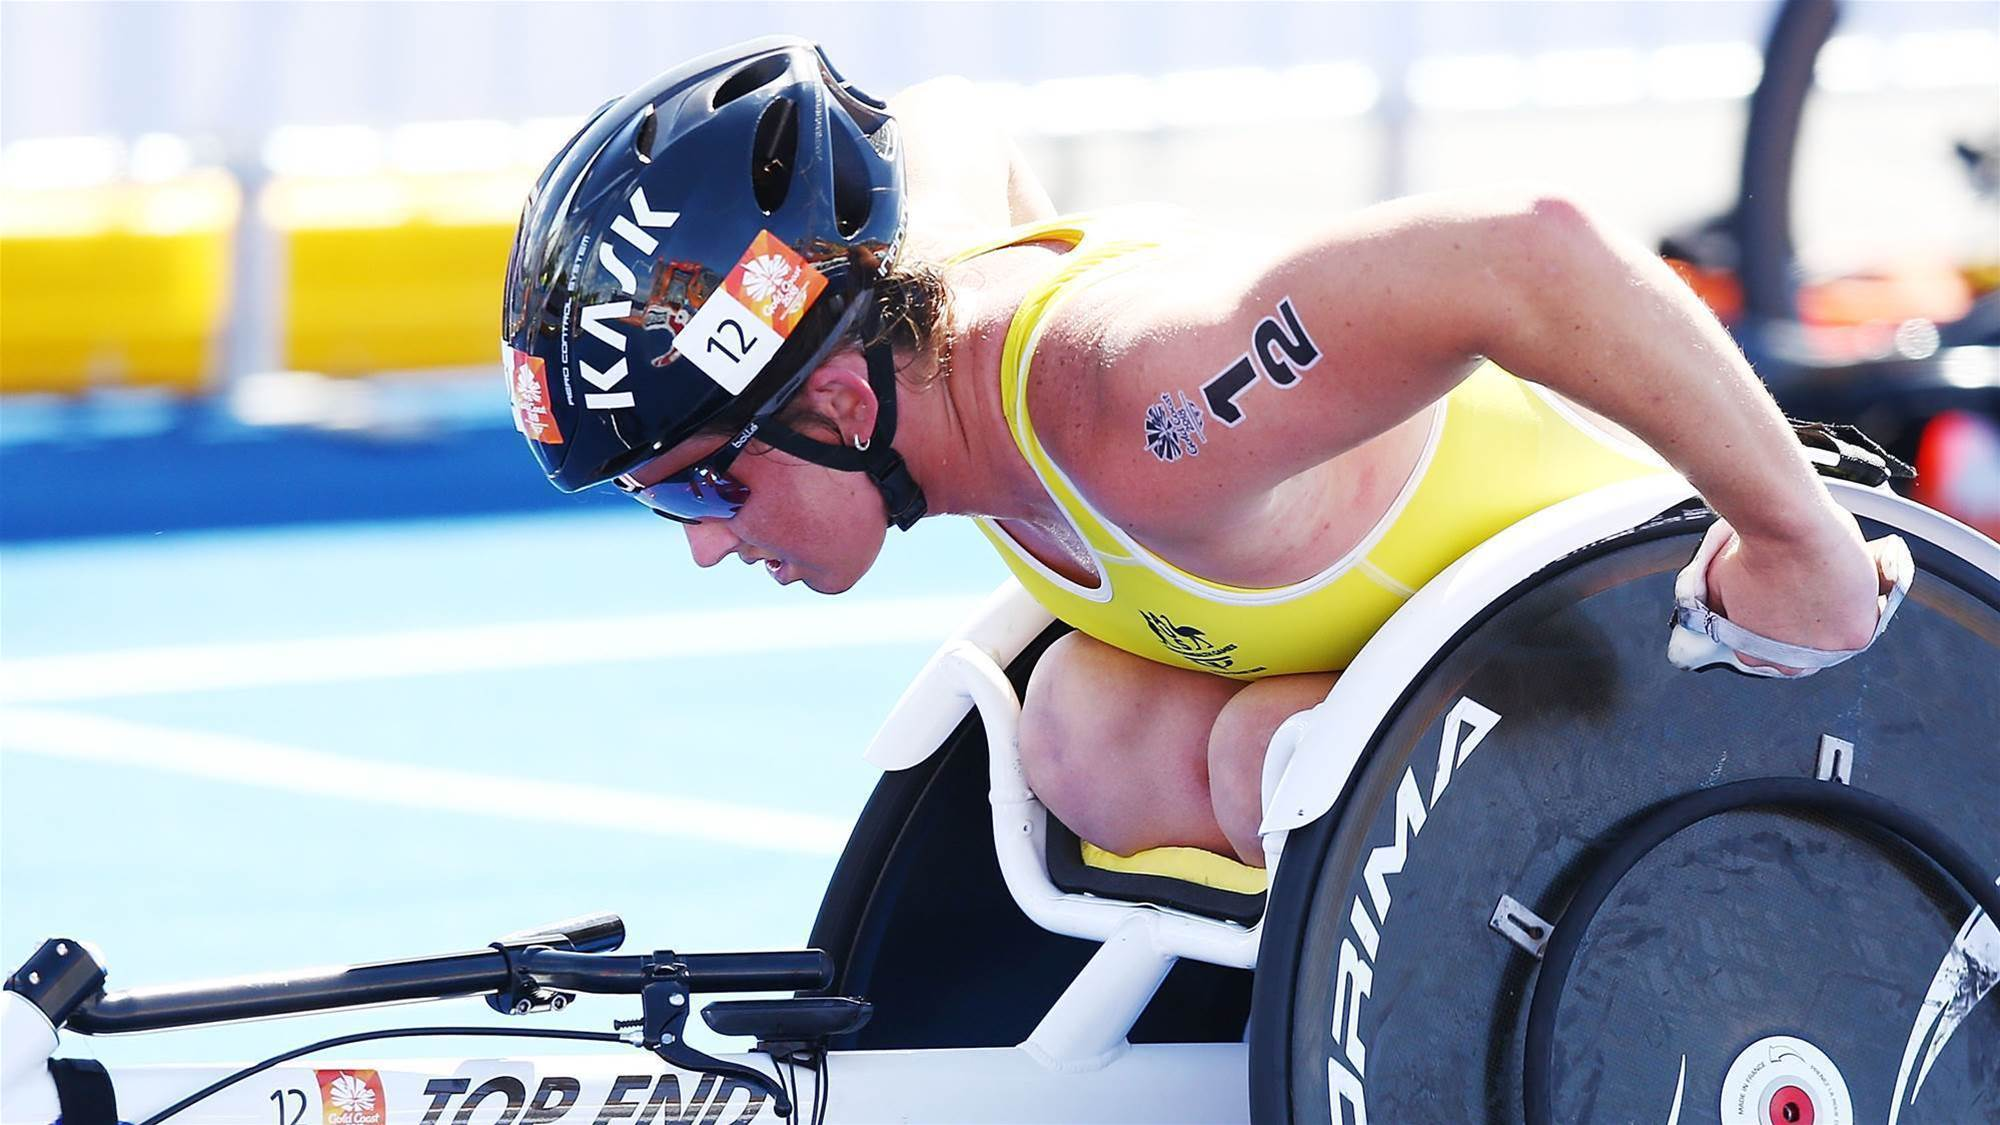 Parker wins first Paratriathlon World Cup gold